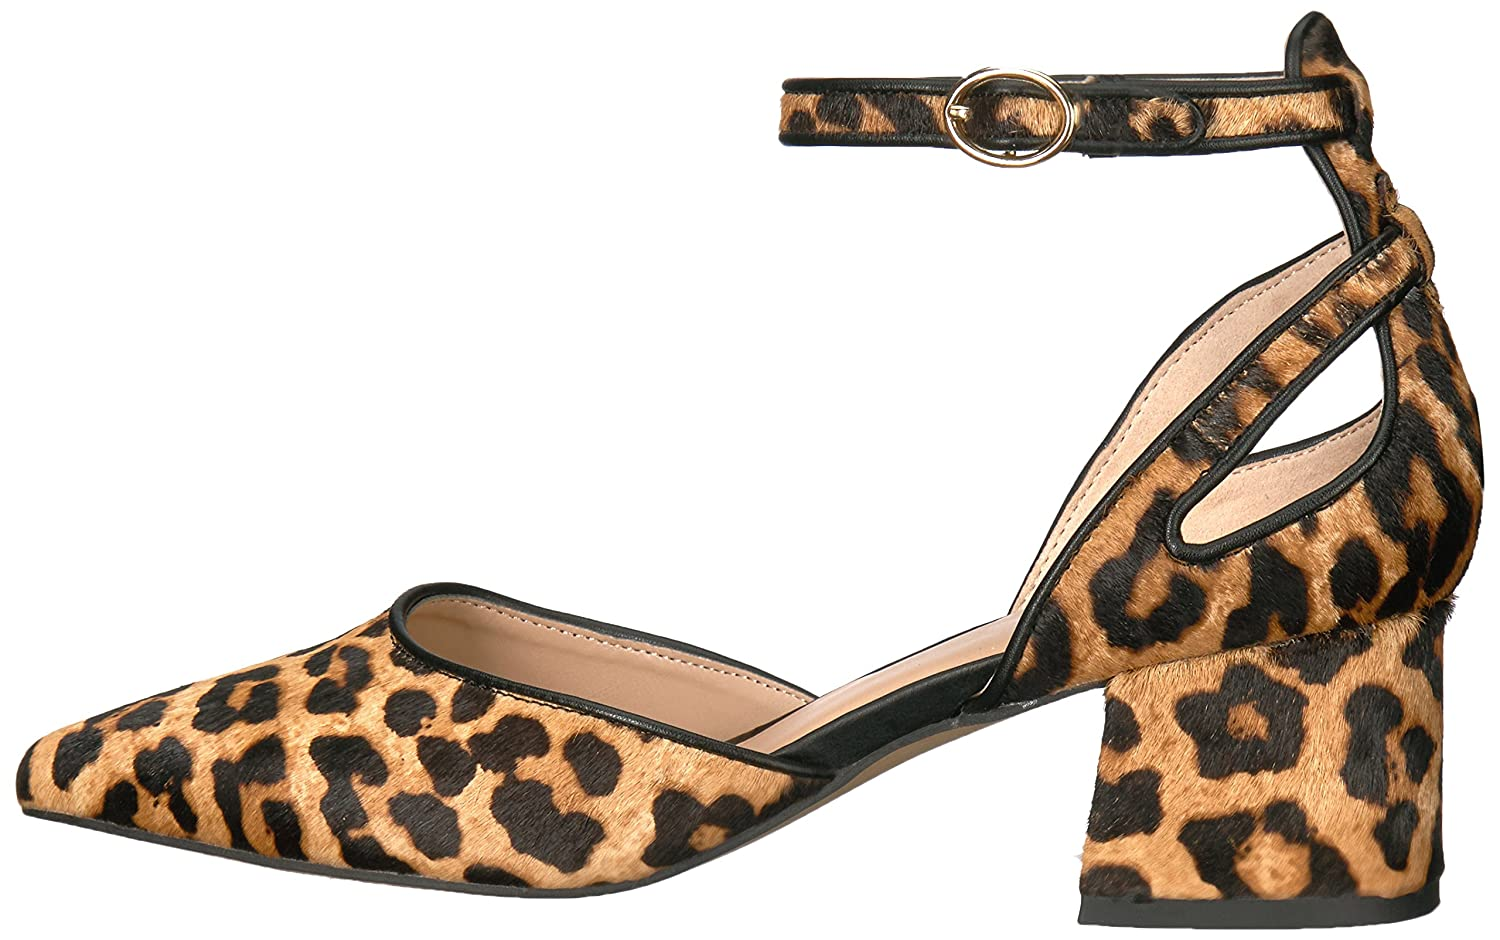 Franco Sarto Women's Caleigh Pump B06XSFZK6G 6 B(M) US|Leopard